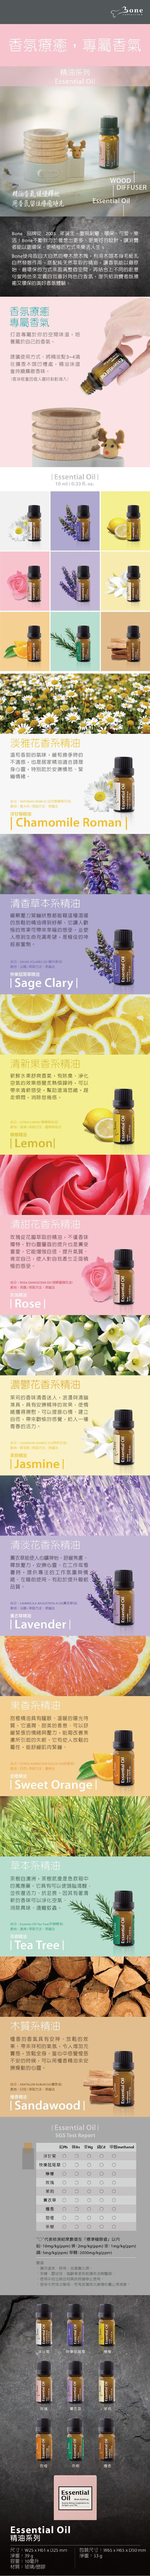 Bone|Essential Oil - Tea Tree 茶樹精油 10ml